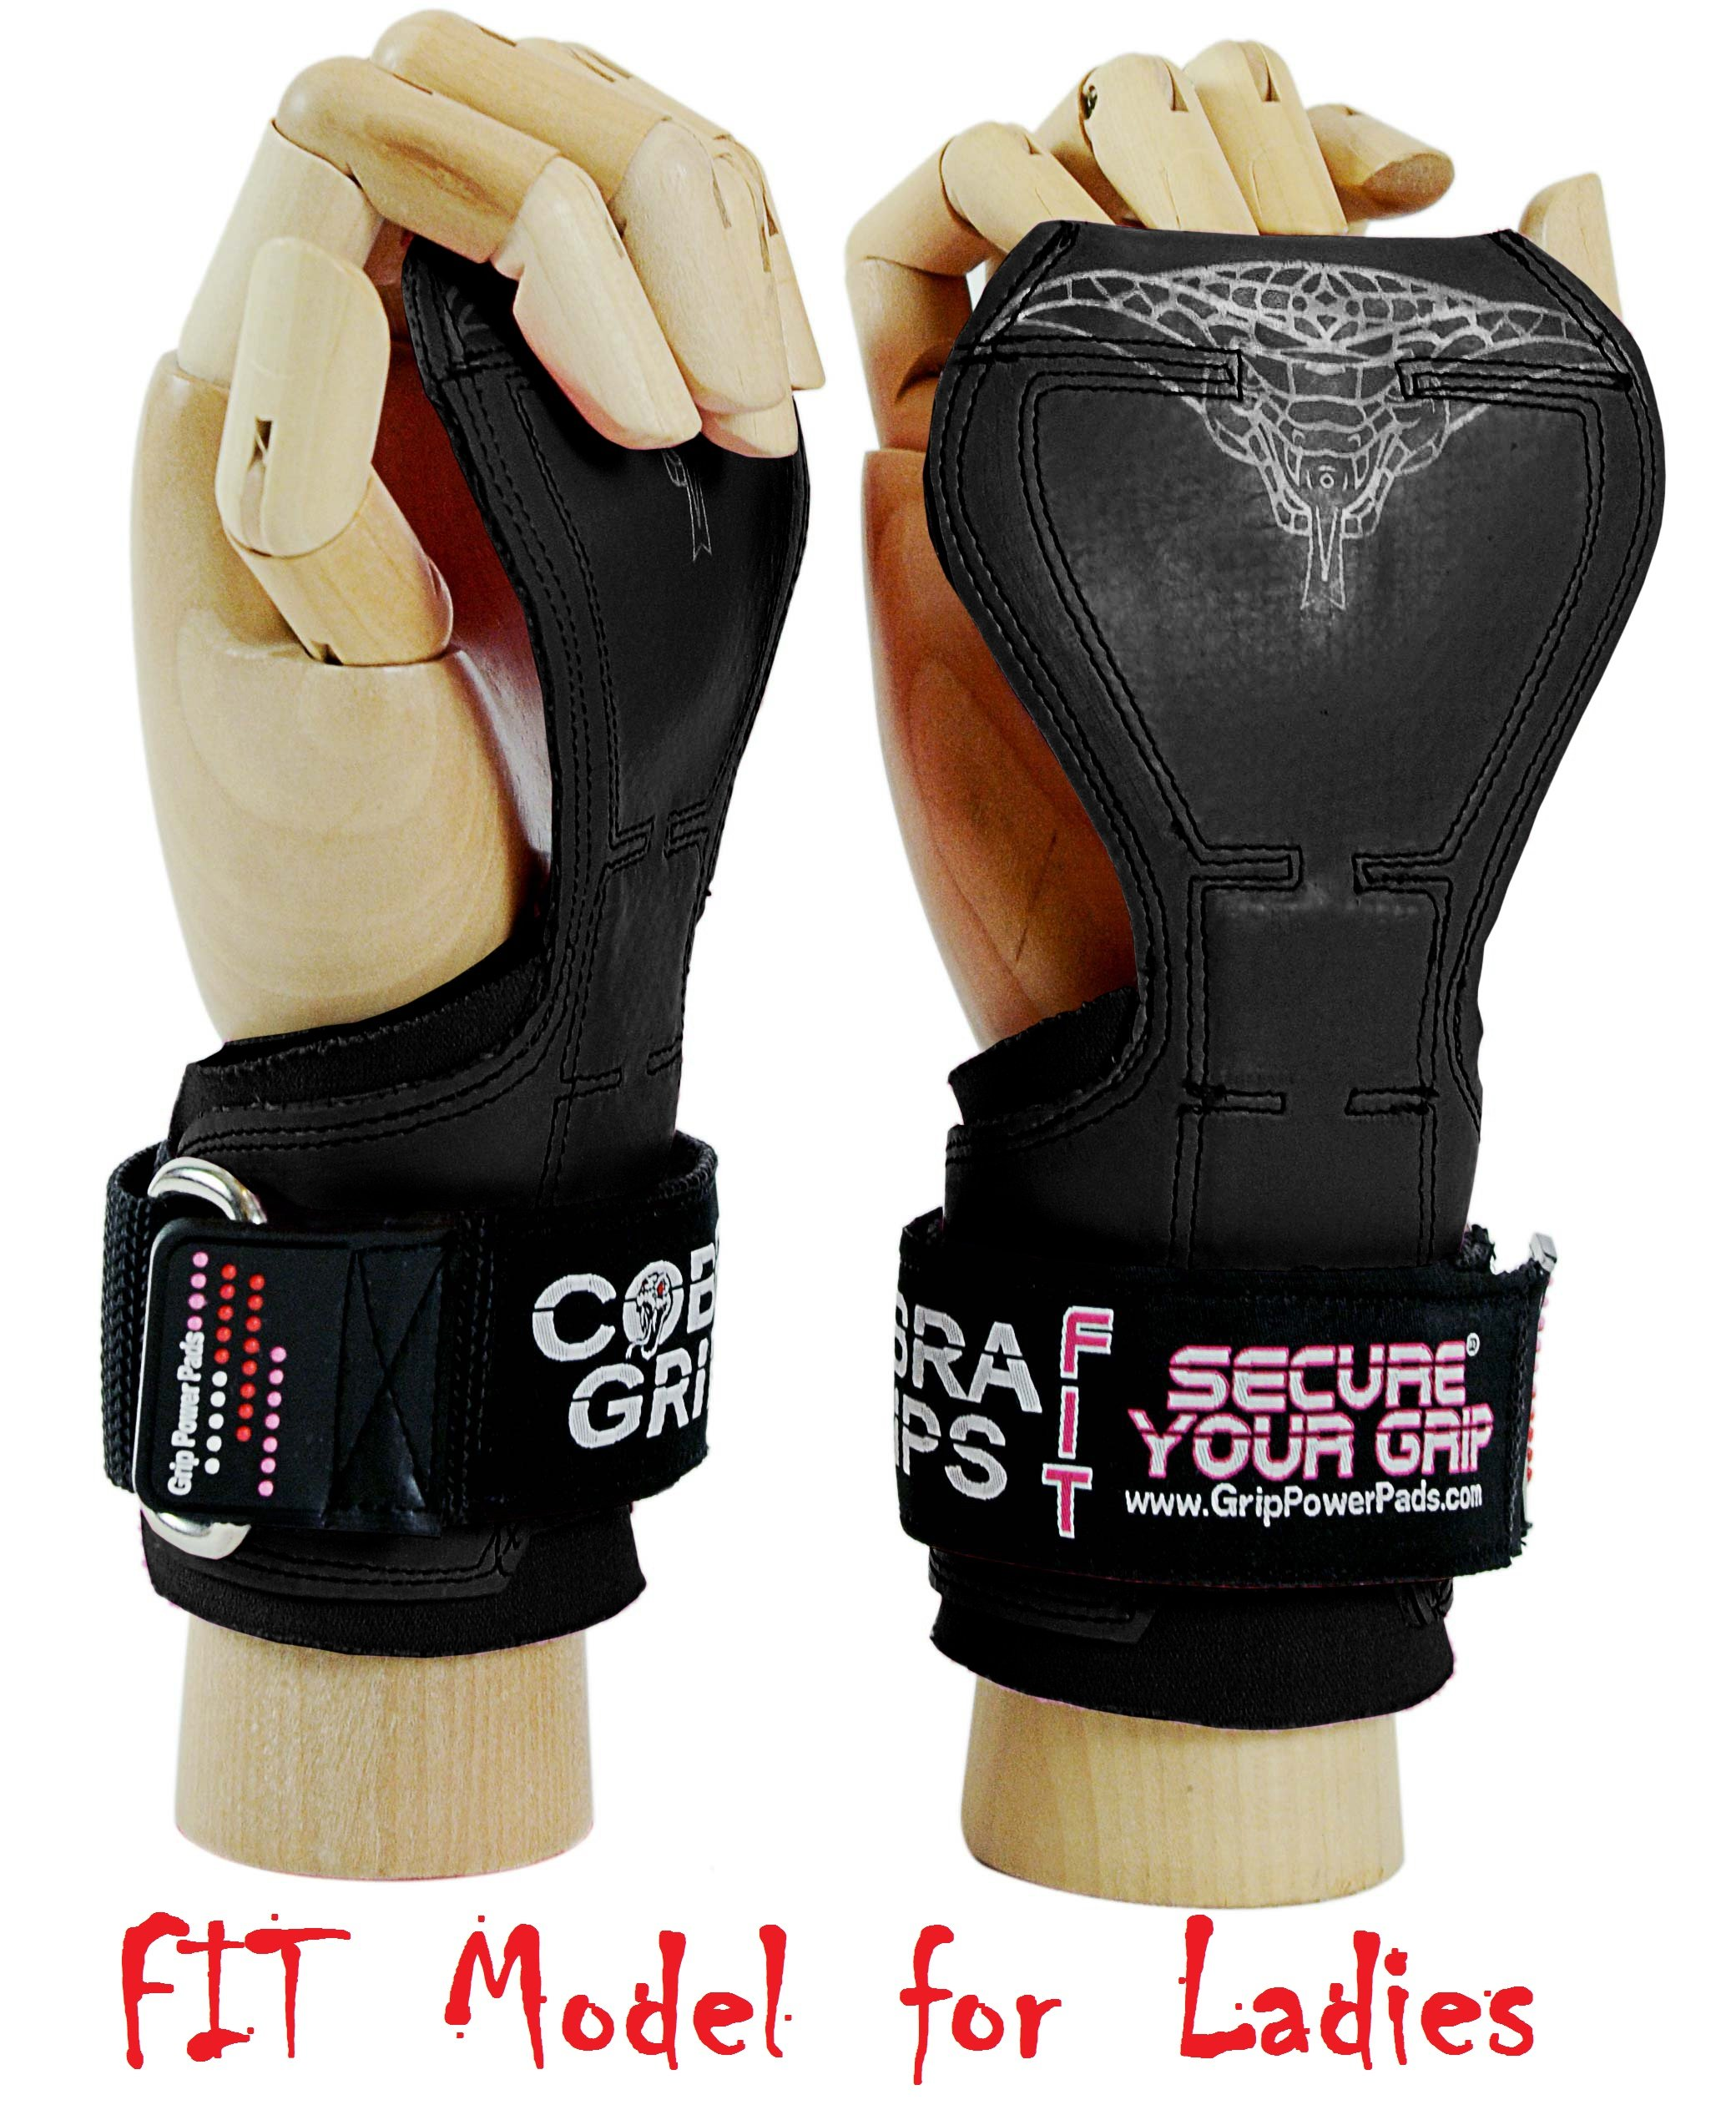 Cobra Grips FIT FOR LADIES! Weight Lifting Gloves Heavy Duty Straps Alternative to Power Lifting Hooks For Deadlifts With Built in Adjustable Neoprene Padded Wrist Wrap Support. (Women Black Rubber) by Grip Power Pads